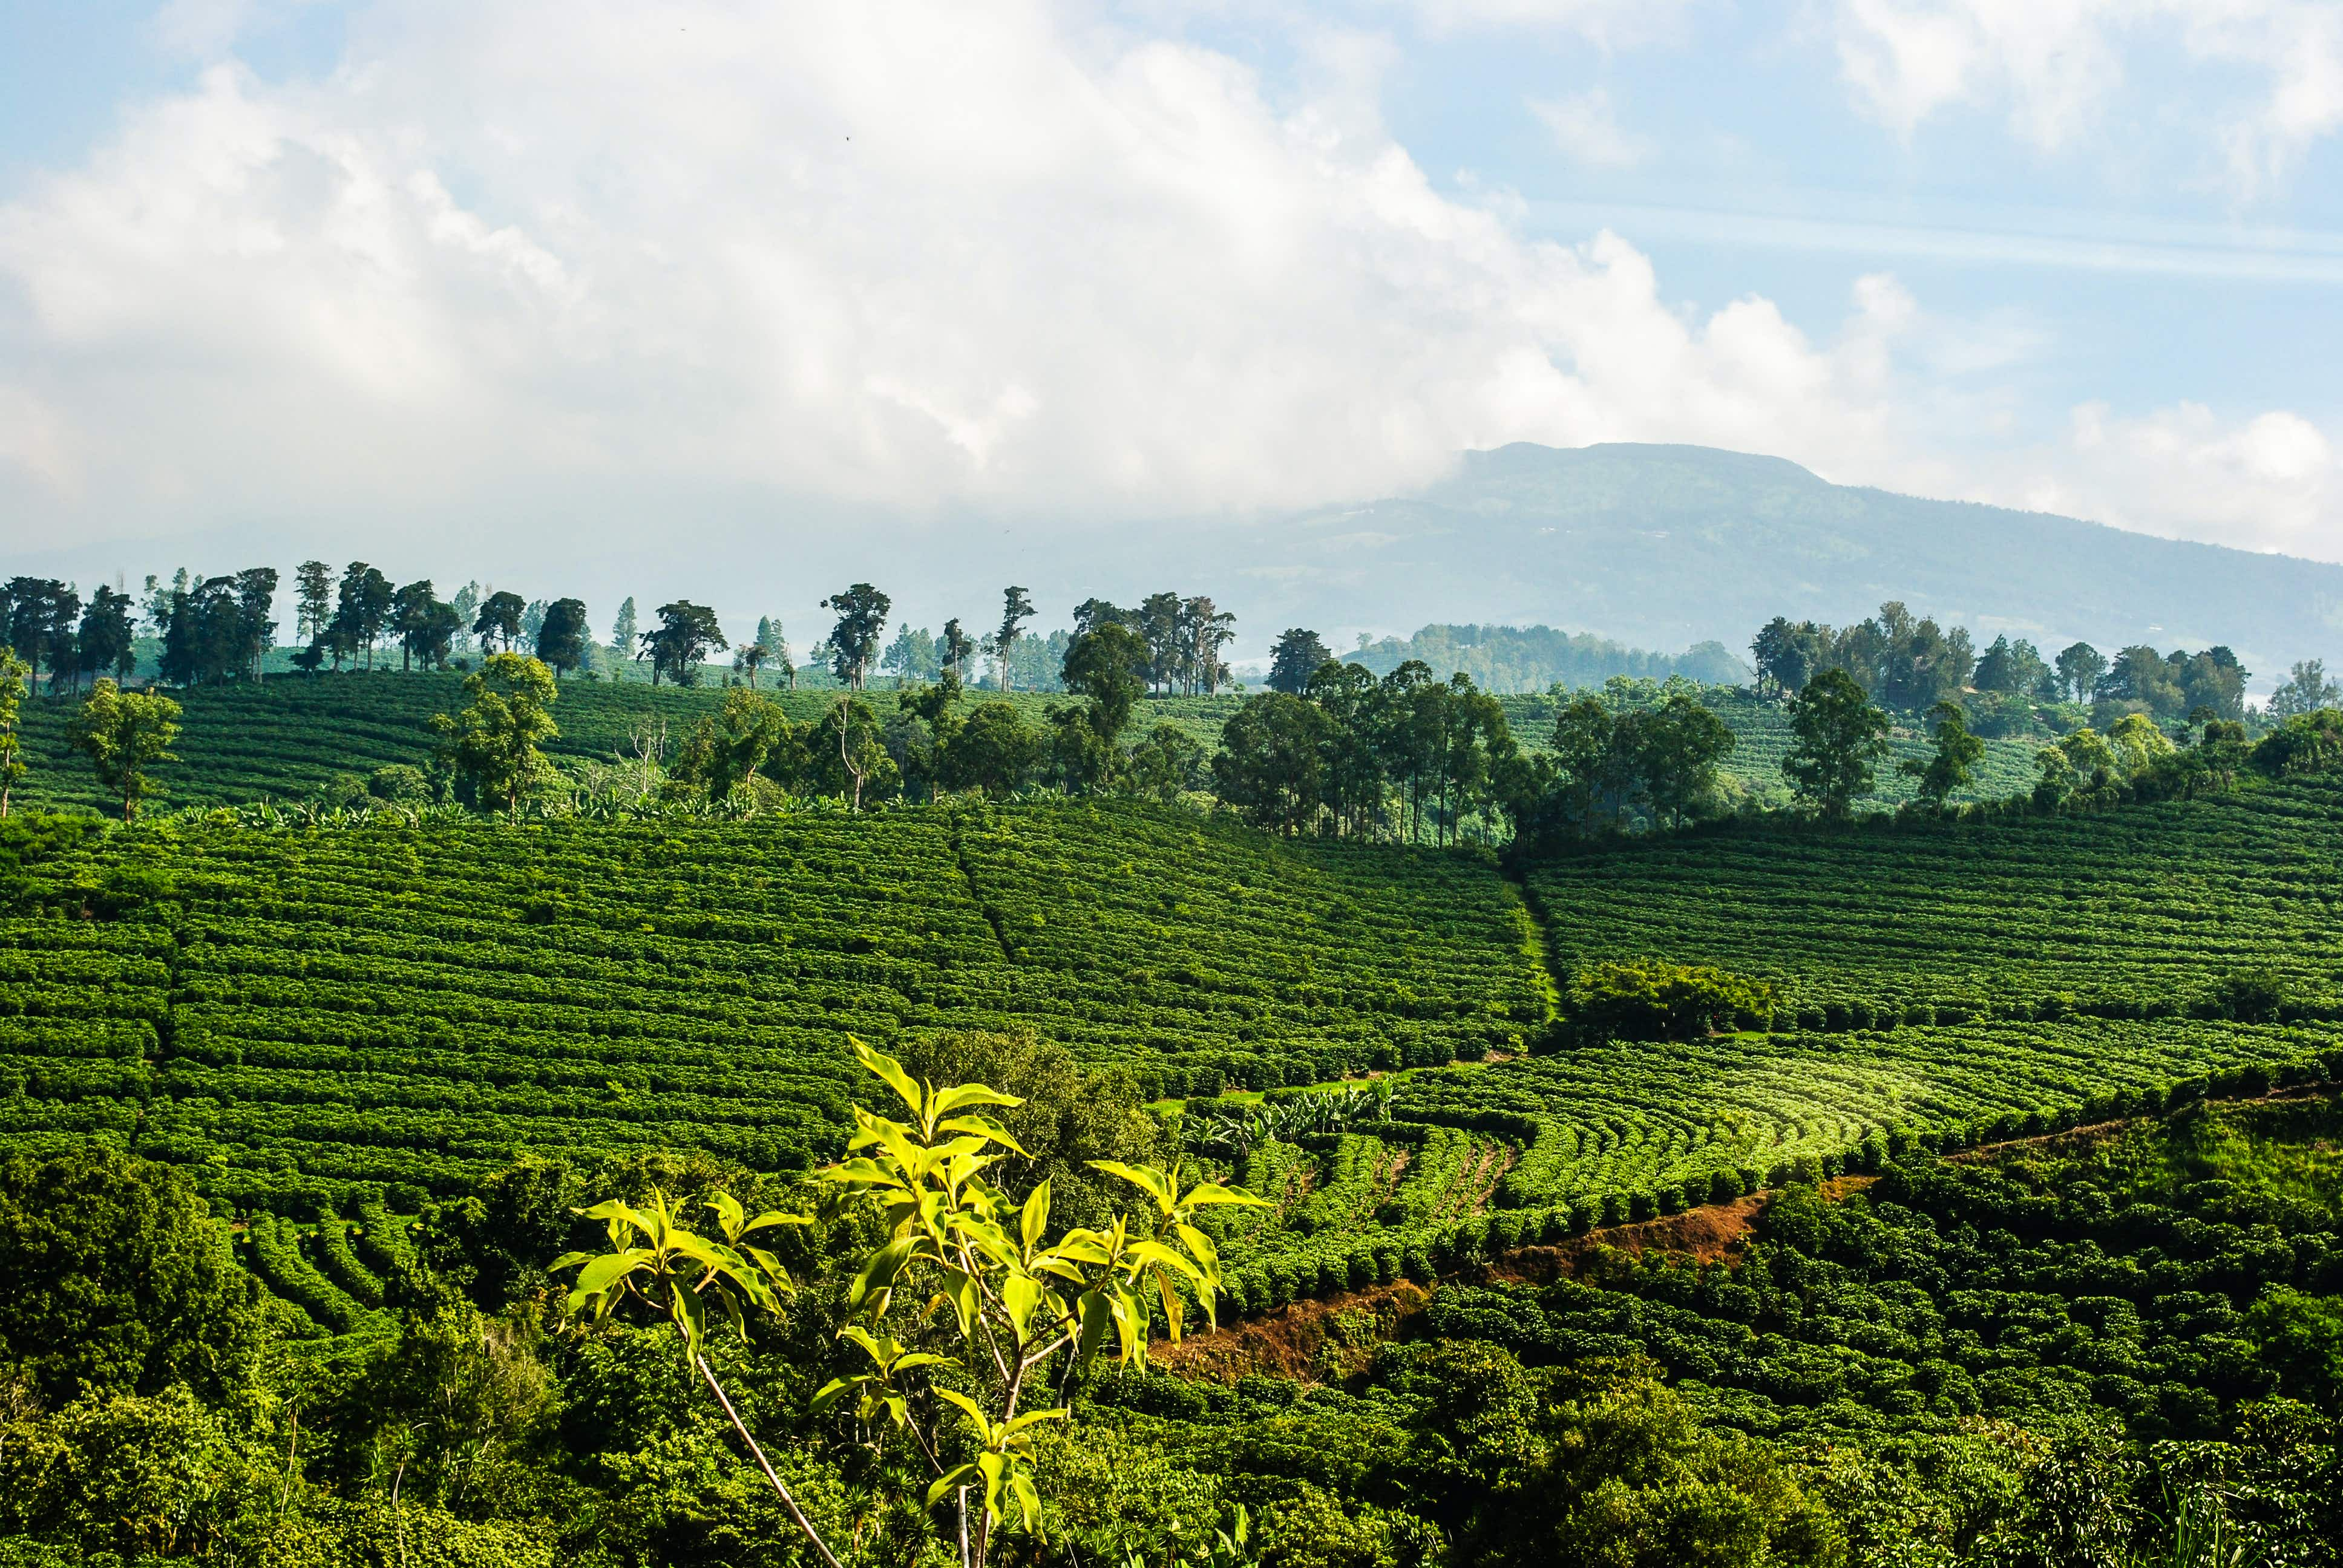 Costa Rica's mountainous terrain makes it ideal for coffee production © OliverJW / Getty Images